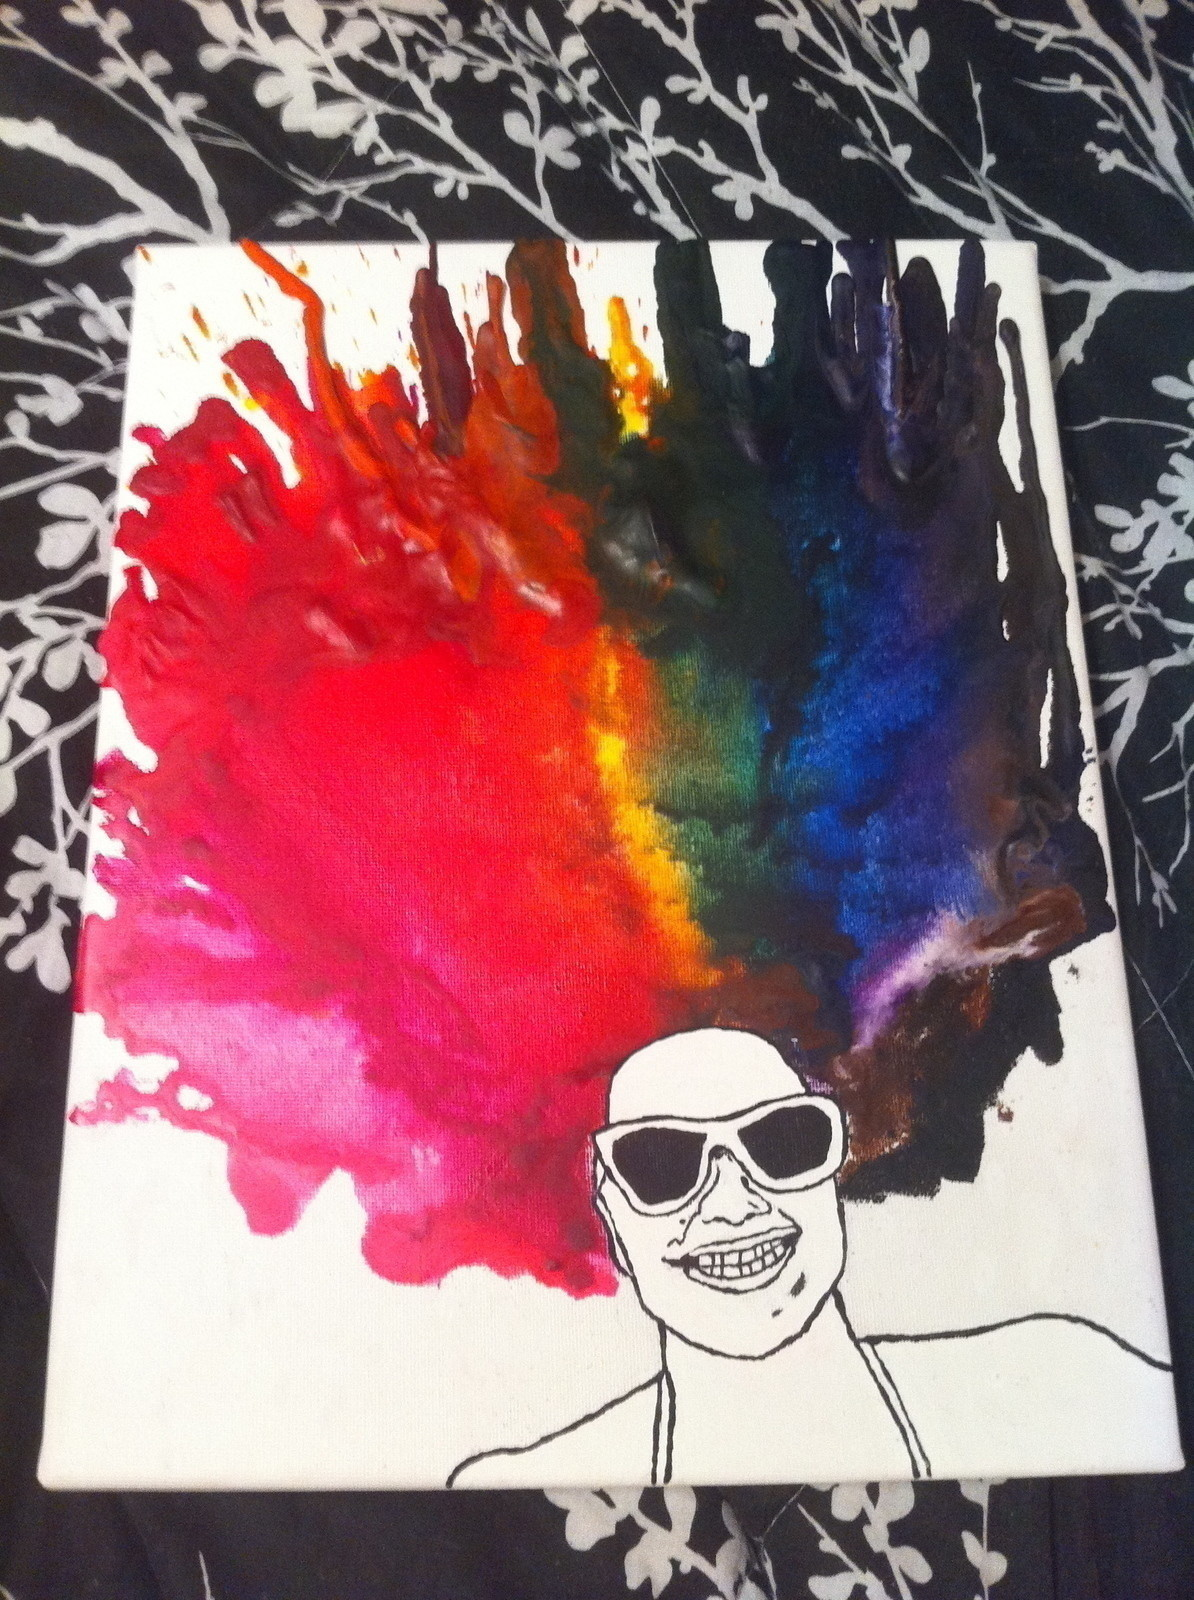 Melted Crayon Portrait  How To Create A Piece Of Melted Crayon Art  Art Drawing and